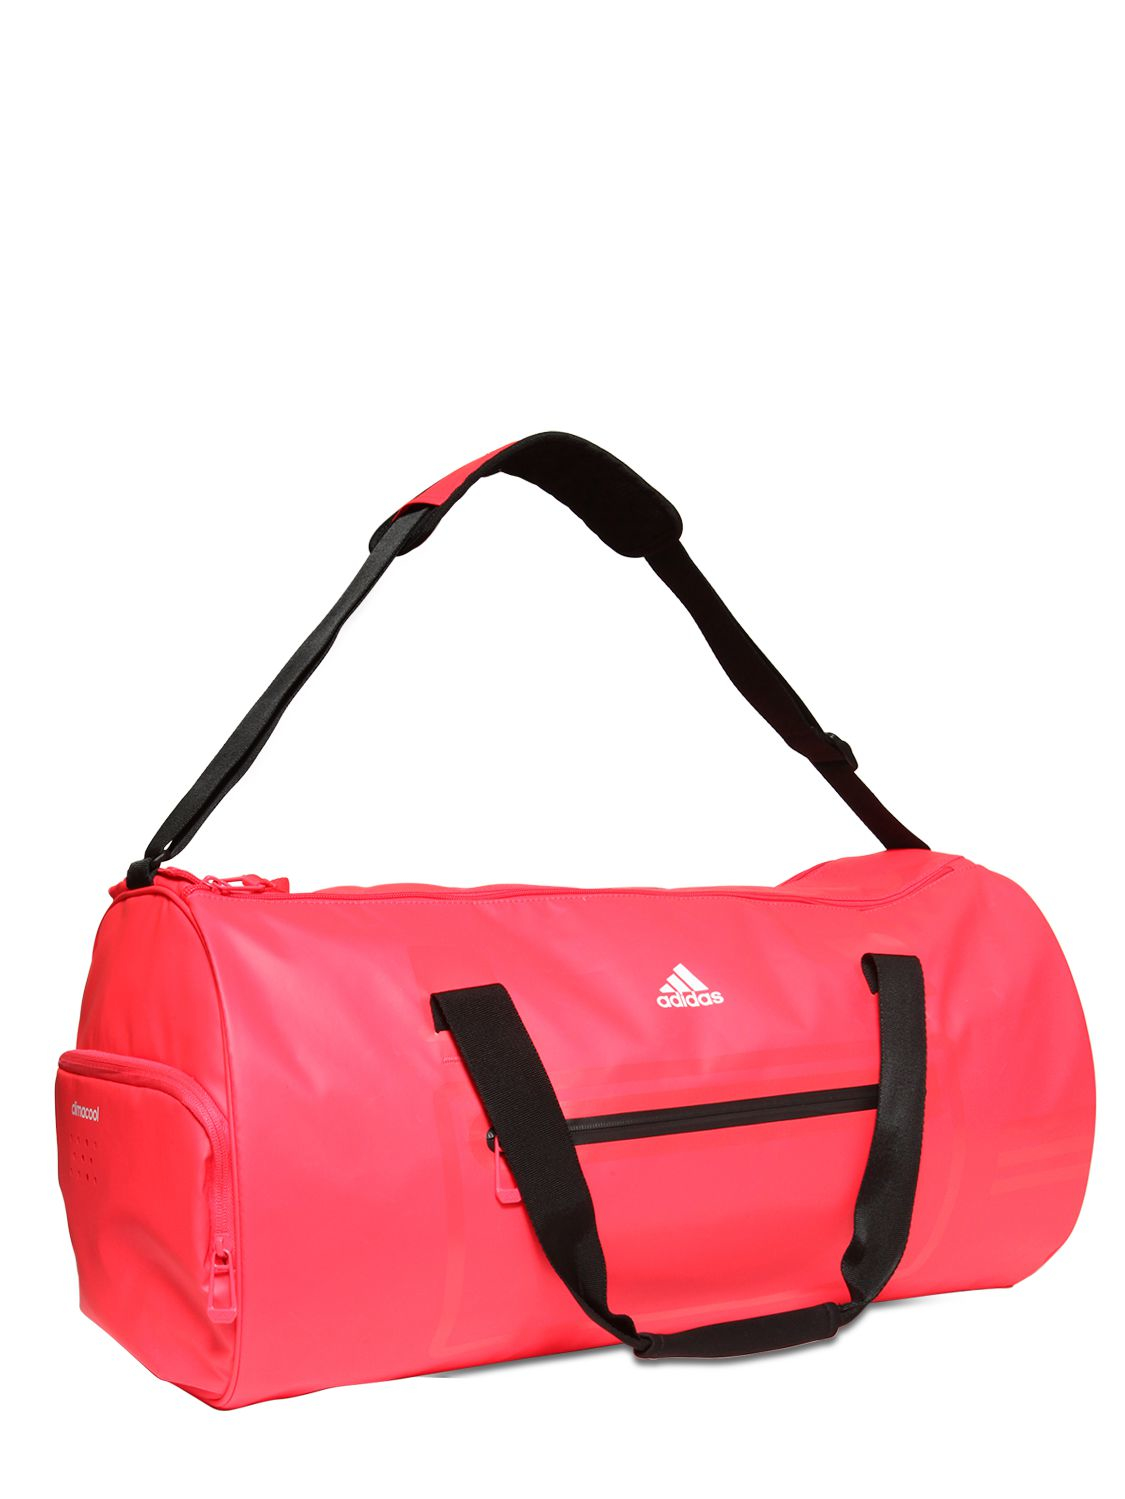 a3c471ac5b0 adidas Originals Water Repellent Coated Nylon Duffle Bag in Red - Lyst